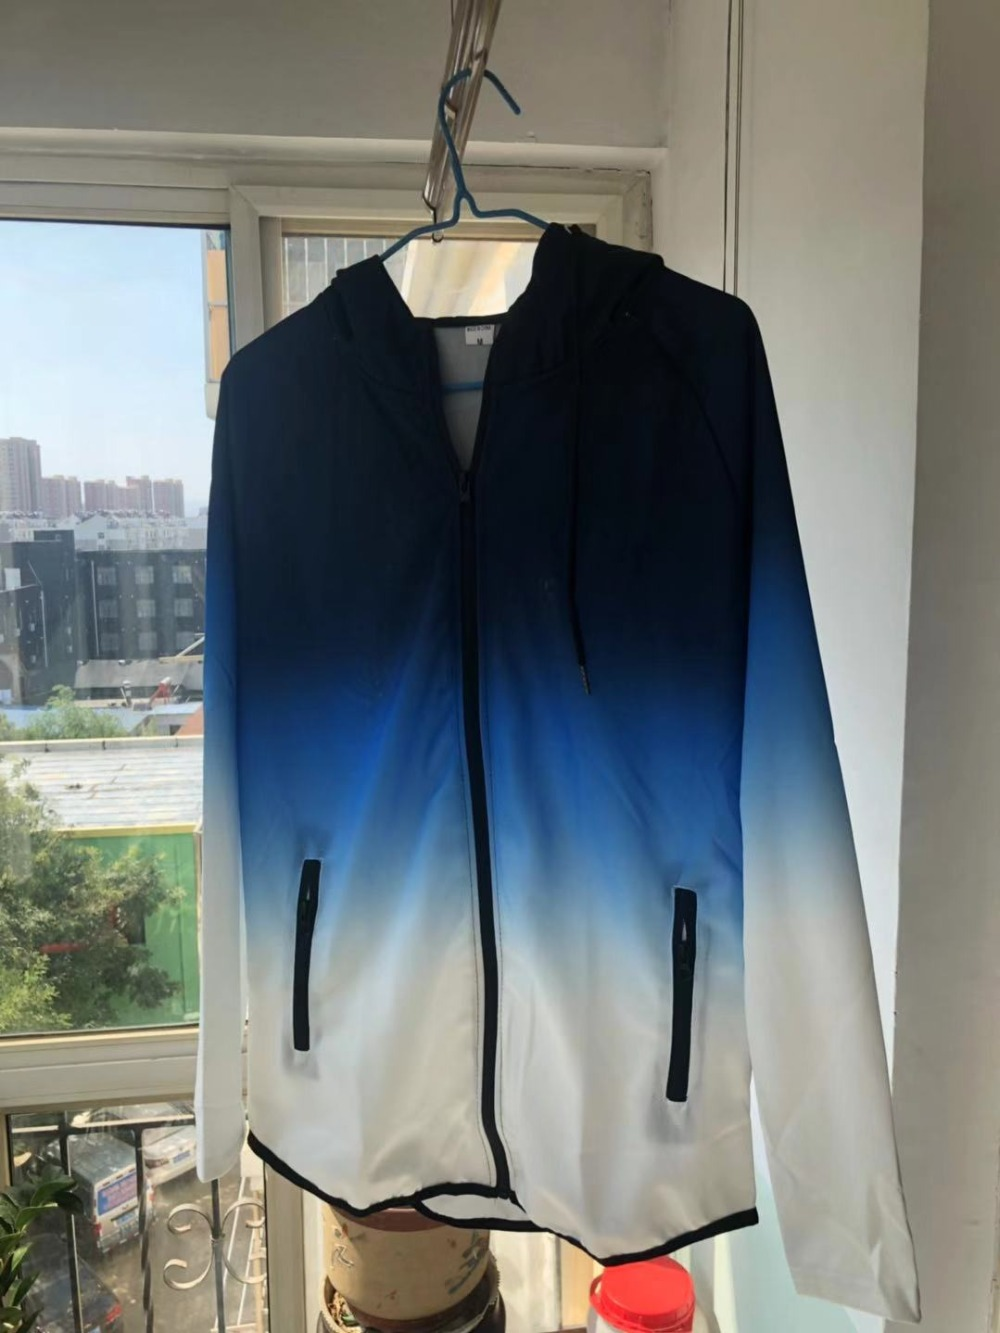 H5324ad8d589a4cae9b8d7a9a69aa007aN spring men jacket fashion gradient color thin hooded sweatshirt mens slim zipper Cardigan brand outerwear hoodies streetwear Top